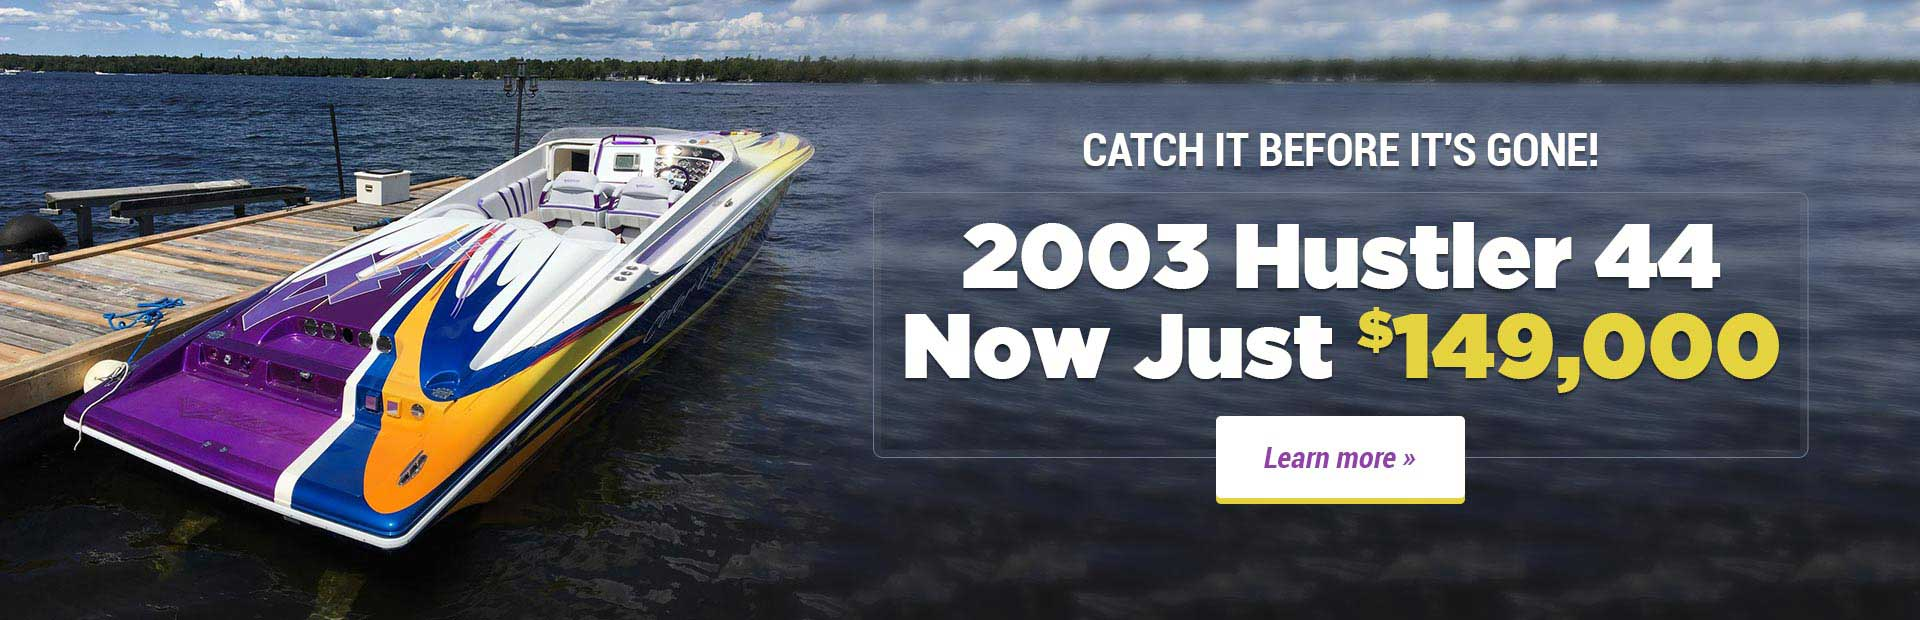 2003 Hustler 44 Now Just $149,000: Click here to learn more.